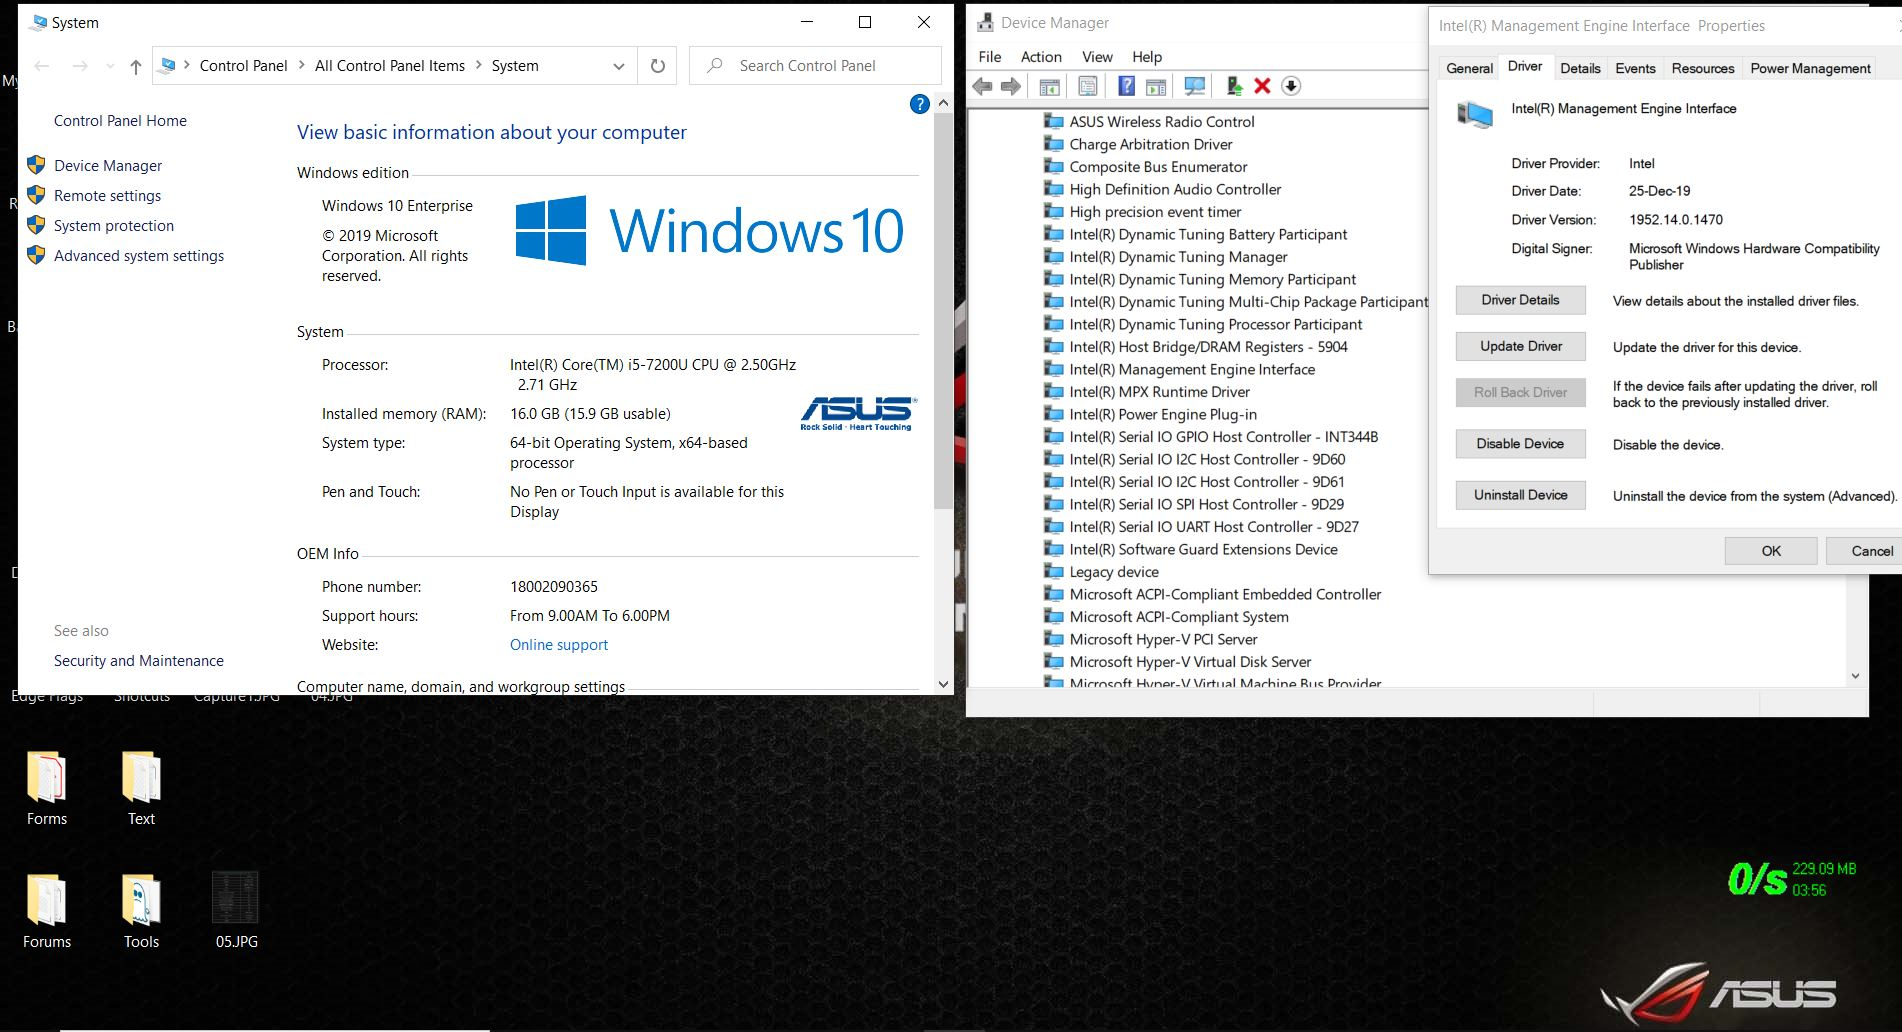 Updated Intel Management Engine Interface WHQL Driver 2027.15.0.1743 in Asus VivoBook 15... 19593d7c-2a4f-4010-ac74-284a305e360b?upload=true.jpg